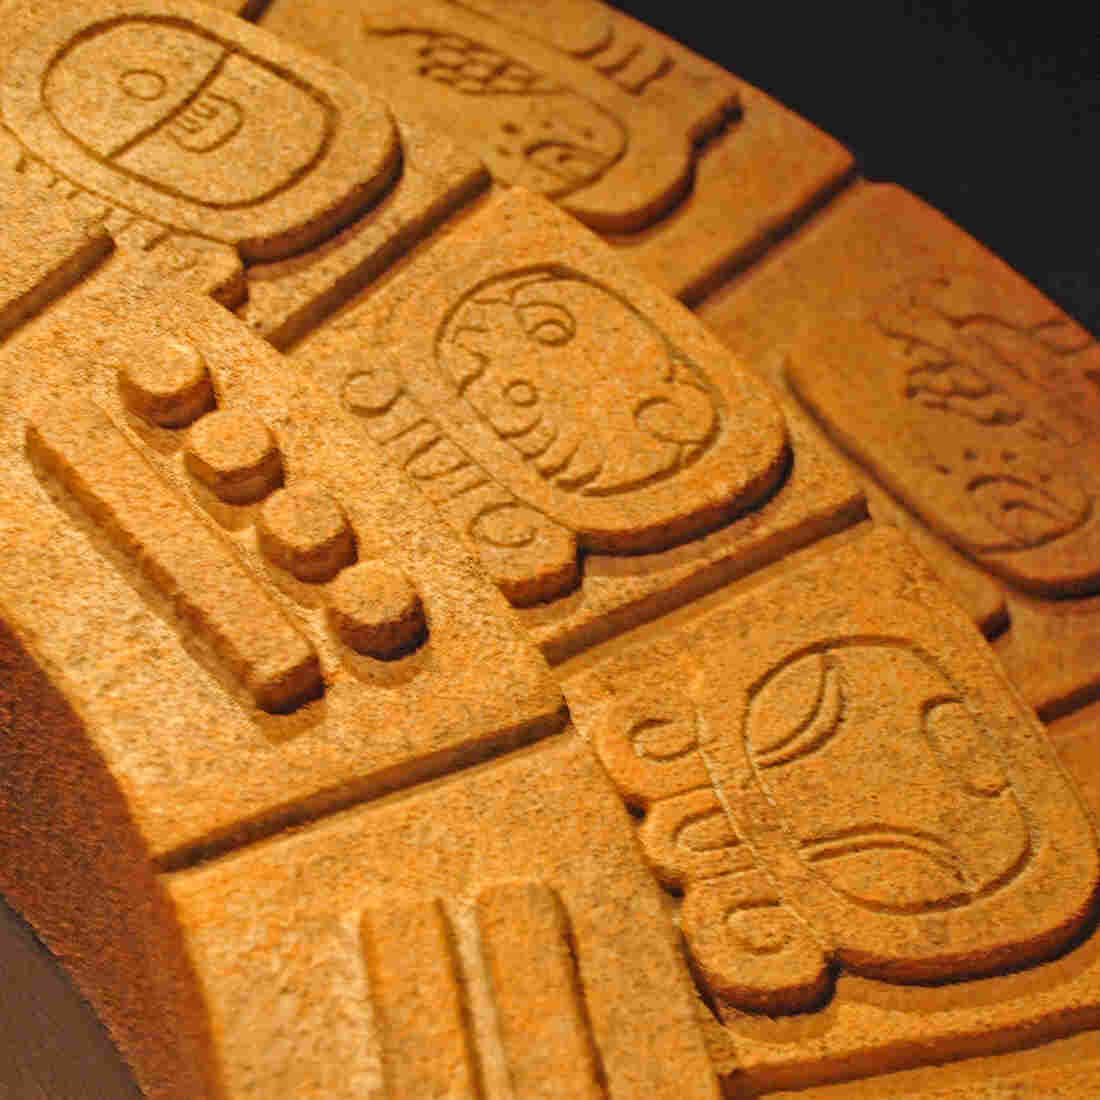 A replica Mayan Calendar Round showing the date September 21, 2004, opening day for the Smithsonian's National Museum of the American Indian.